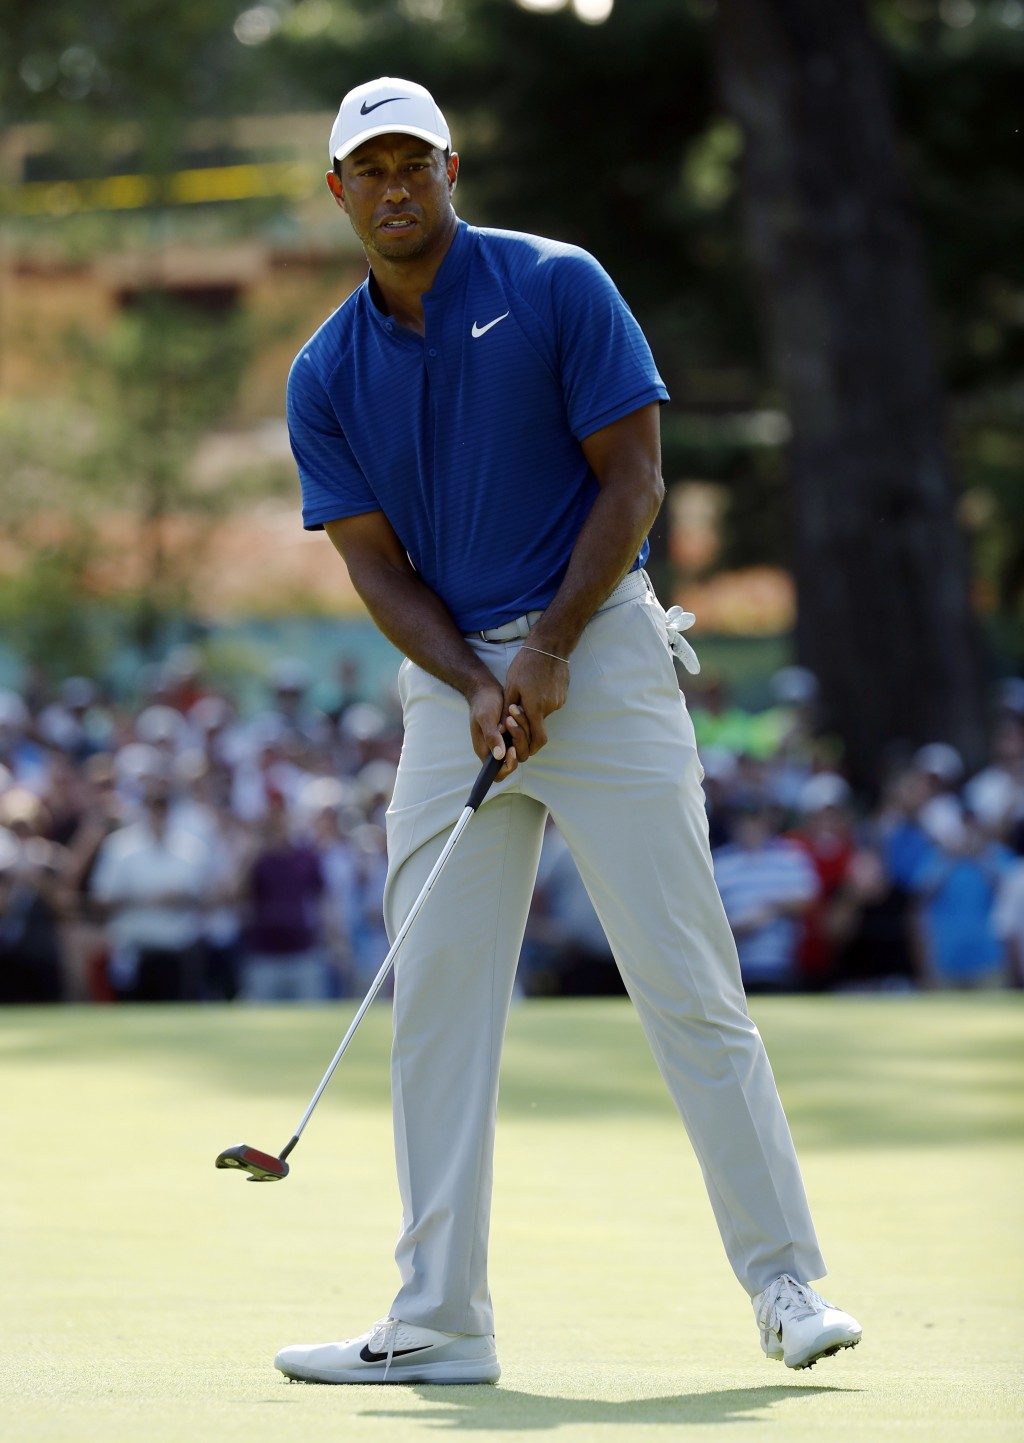 Tiger Woods looks at his putt on the 15th green during the third round of the PGA Championship golf tournament at Bellerive Country Club, Saturday, Au